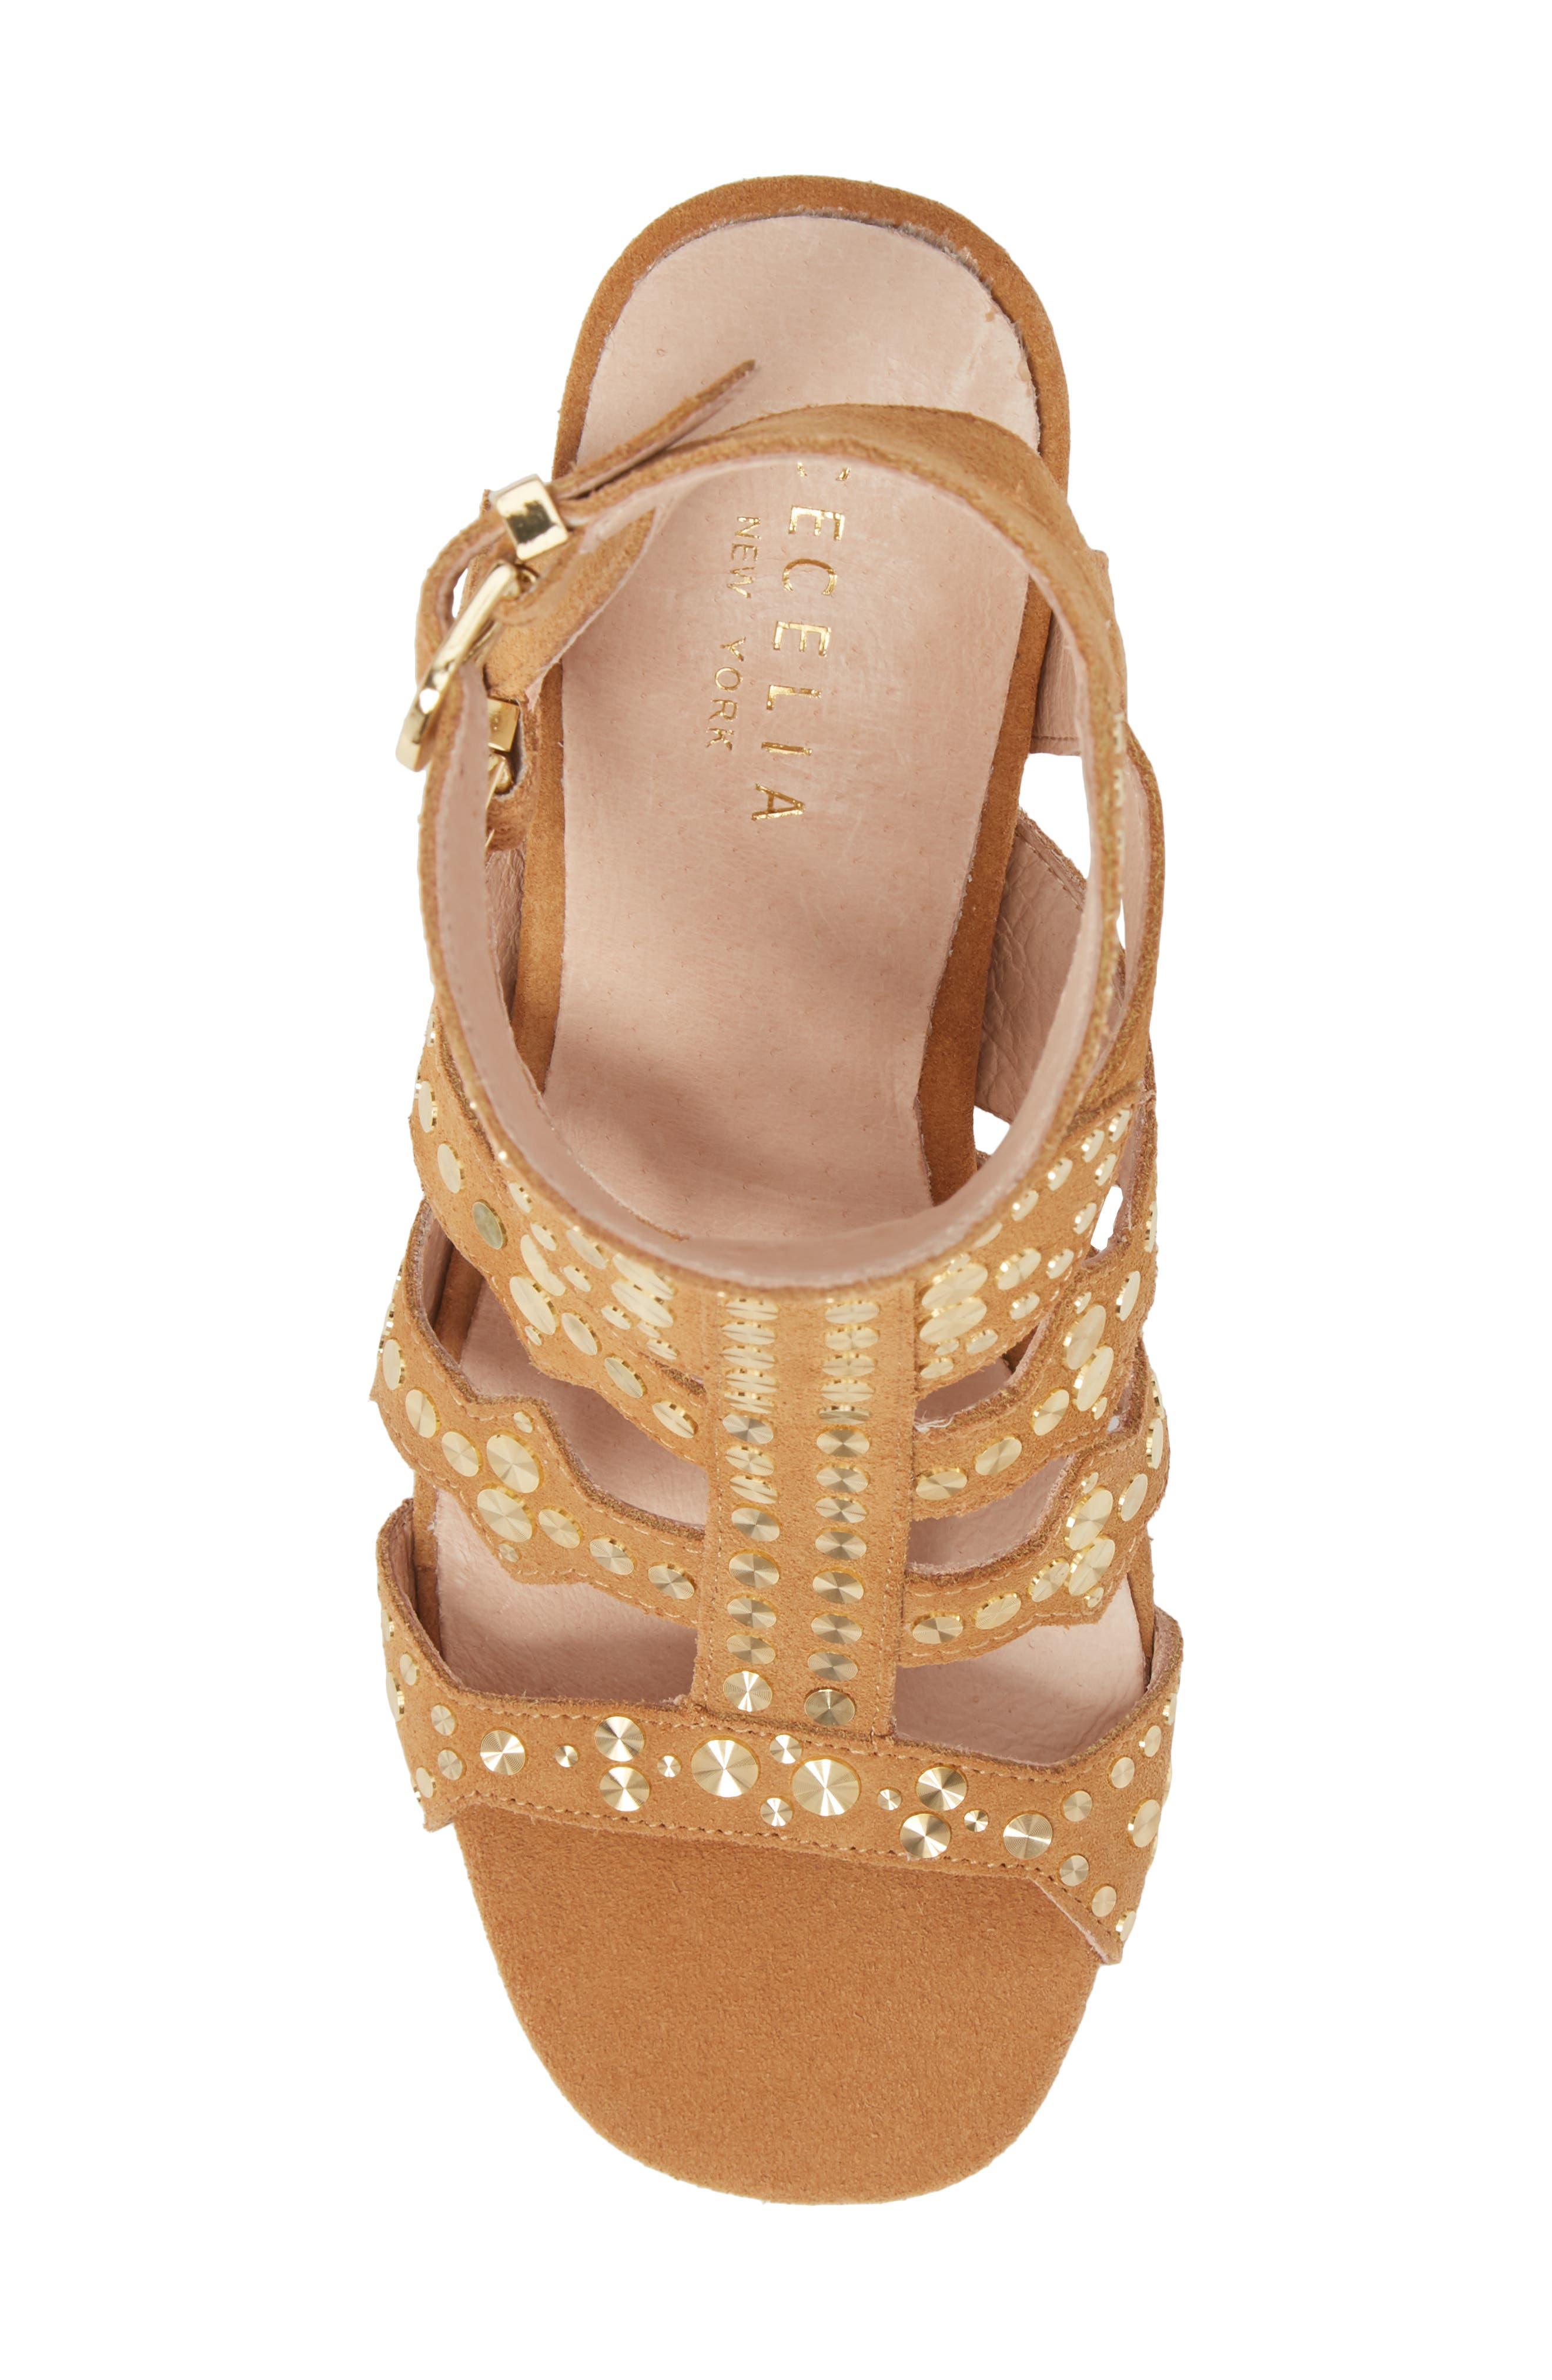 Cosmo Studded Sandal,                             Alternate thumbnail 5, color,                             Sand Suede